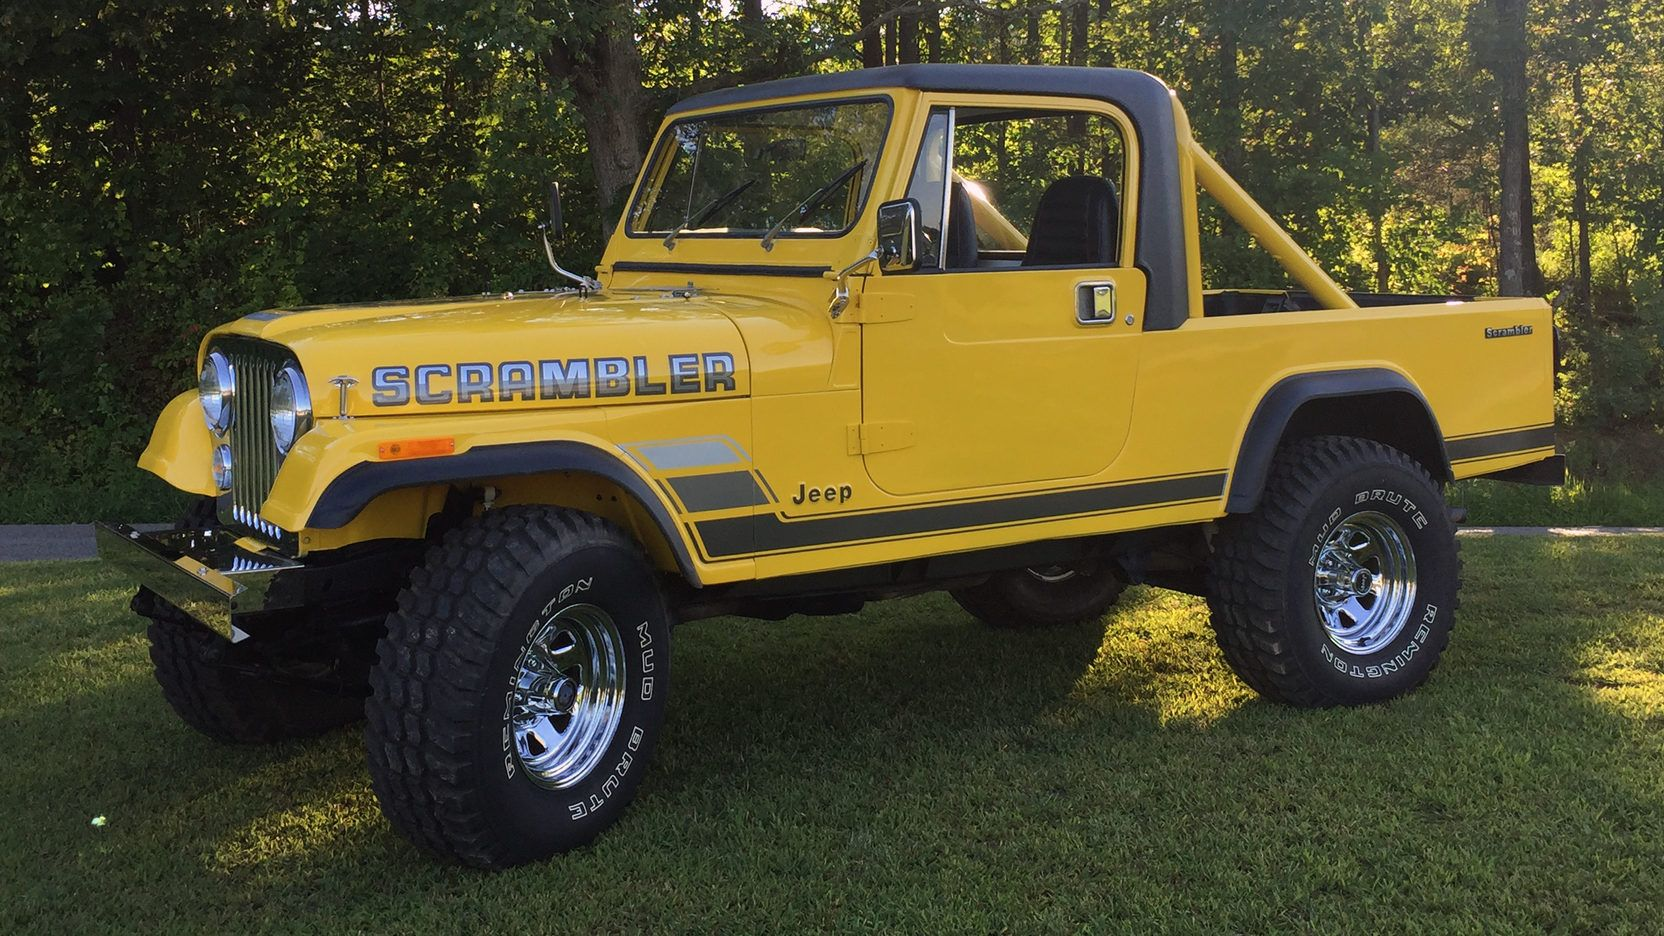 Auction Lot F158 Louisville Ky 2017 Yellow With Black Interior 258 Ci 6 Cylinder Engine 4 Speed Manual Transmission 2 Jeep Scrambler Jeep Truck Scrambler